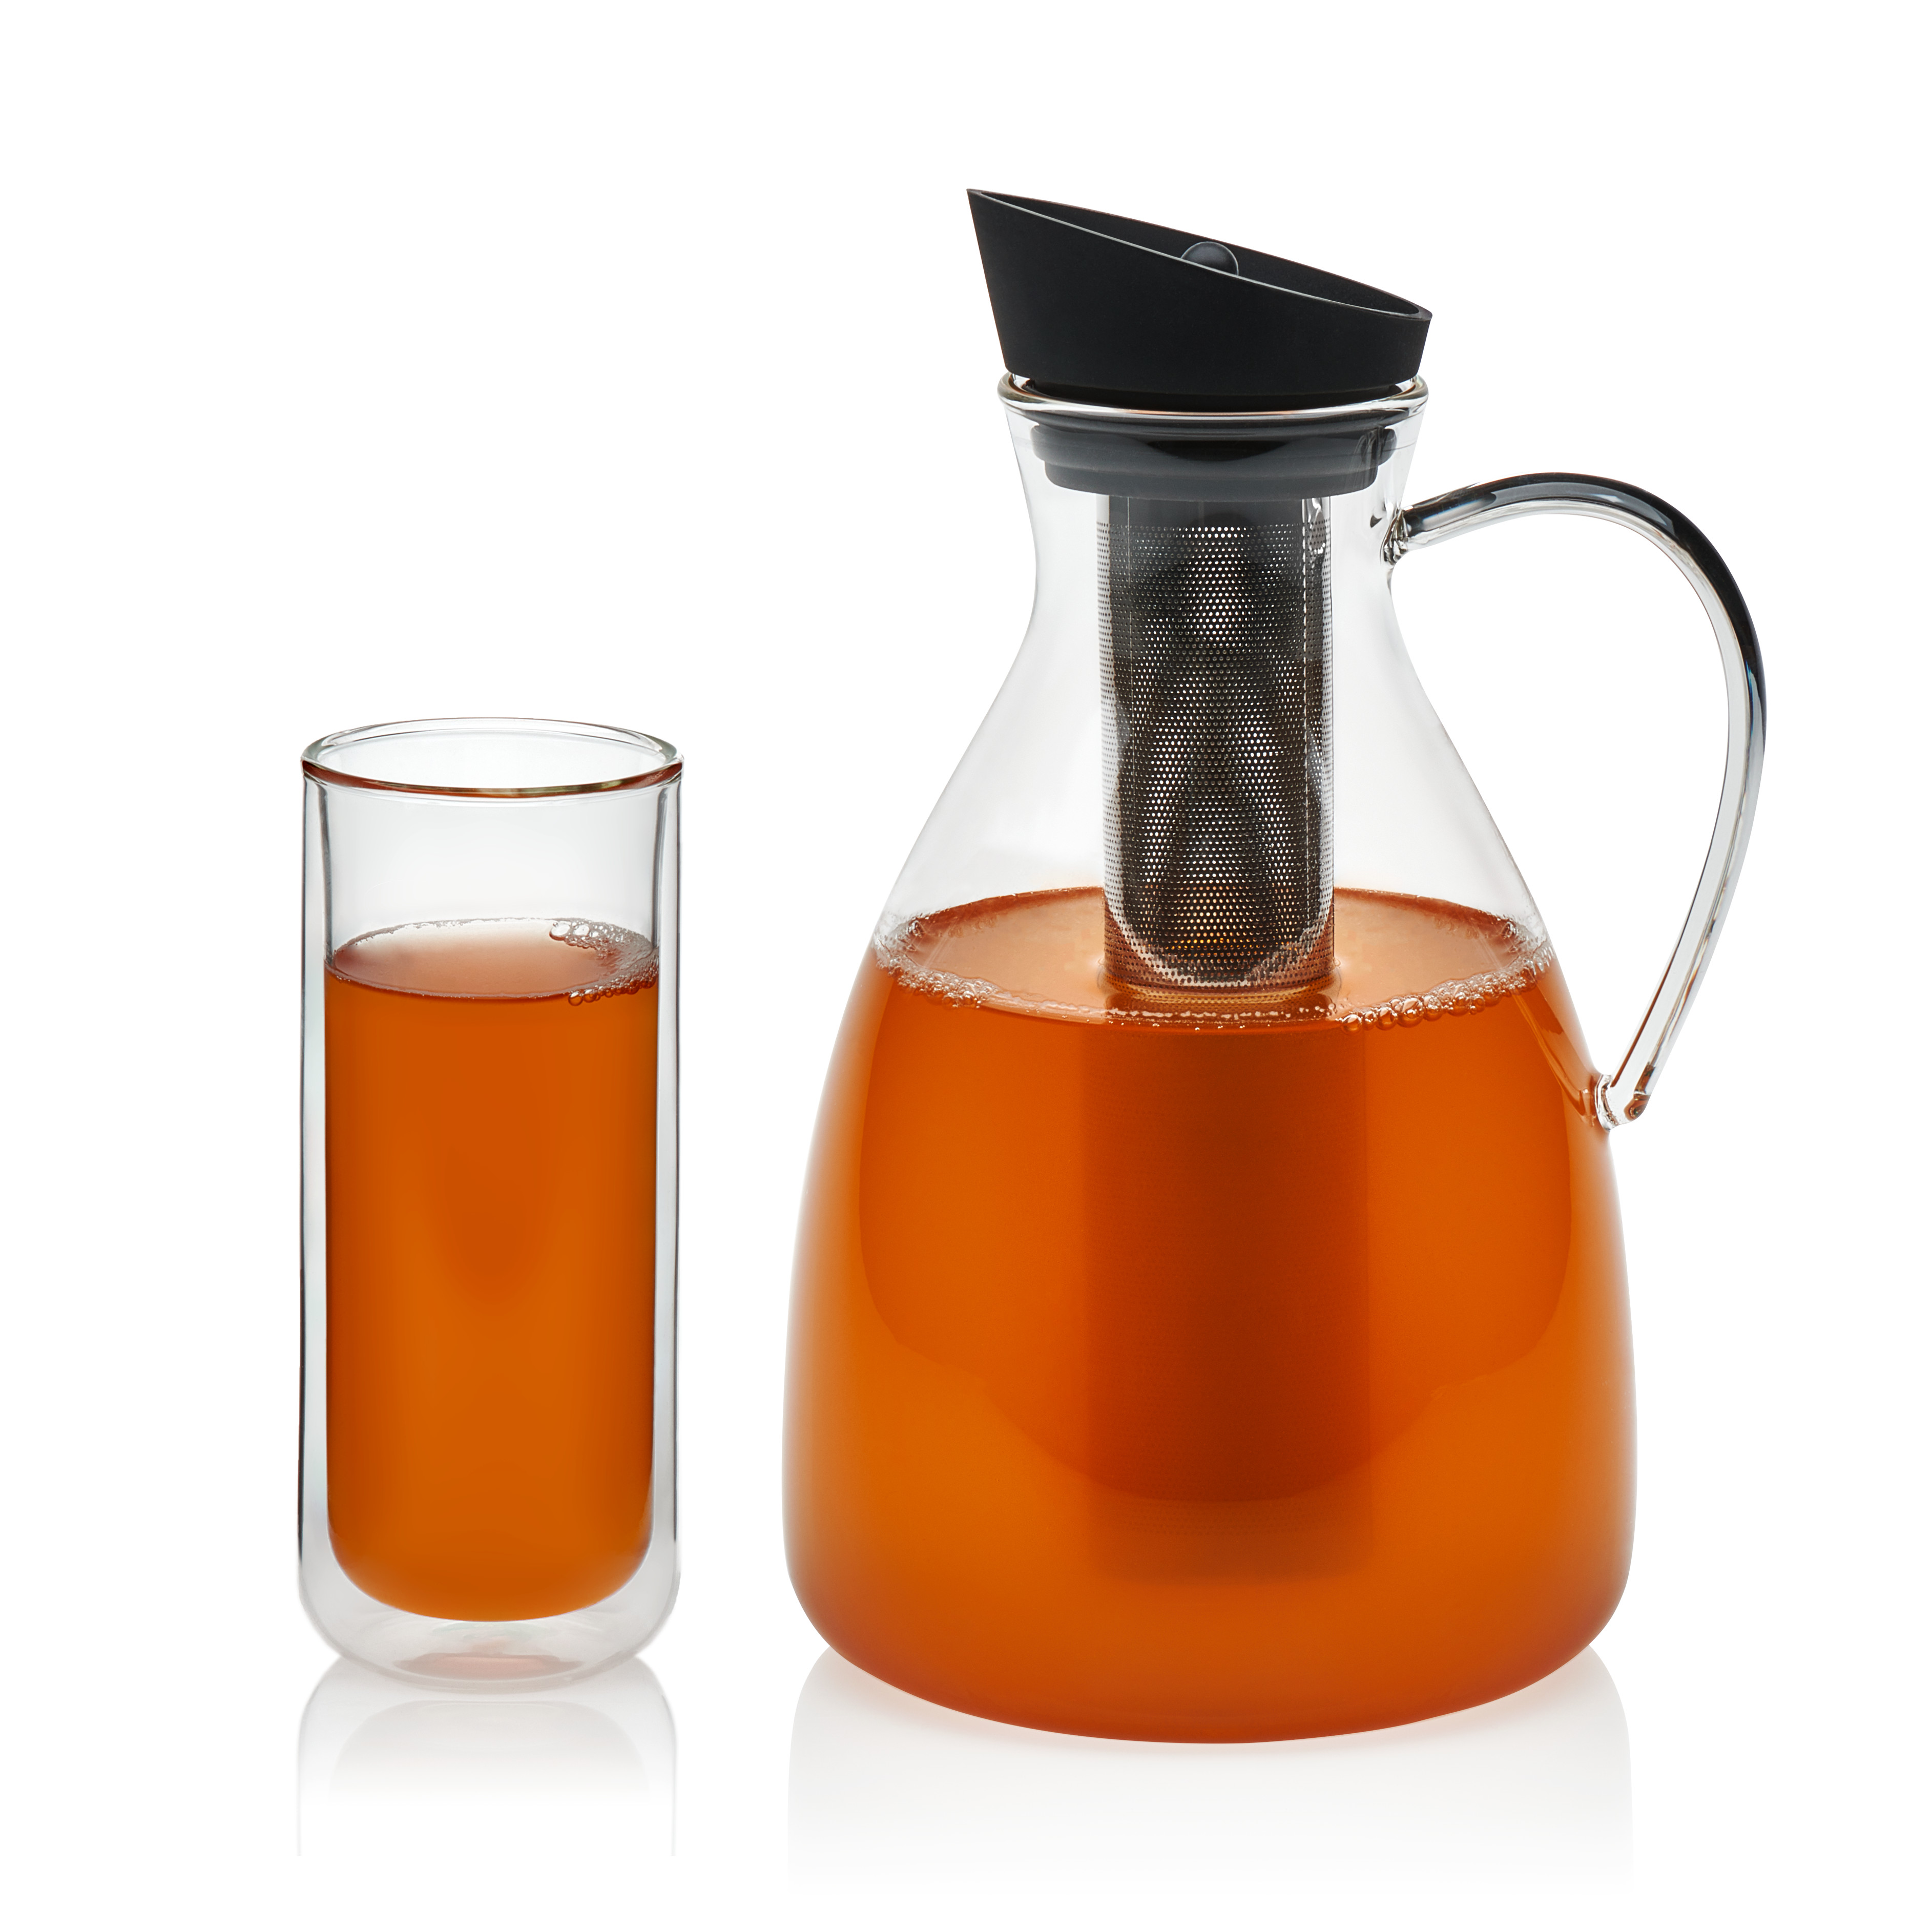 VIVA Scandinavia Infusion Glass Iced Tea Carafe and Classic Double Walled Tall Drinkware Set, 12-ounce Double Walled Glasses & 74-ounce Iced Tea Carafe, Borosilicate (Set of 5)